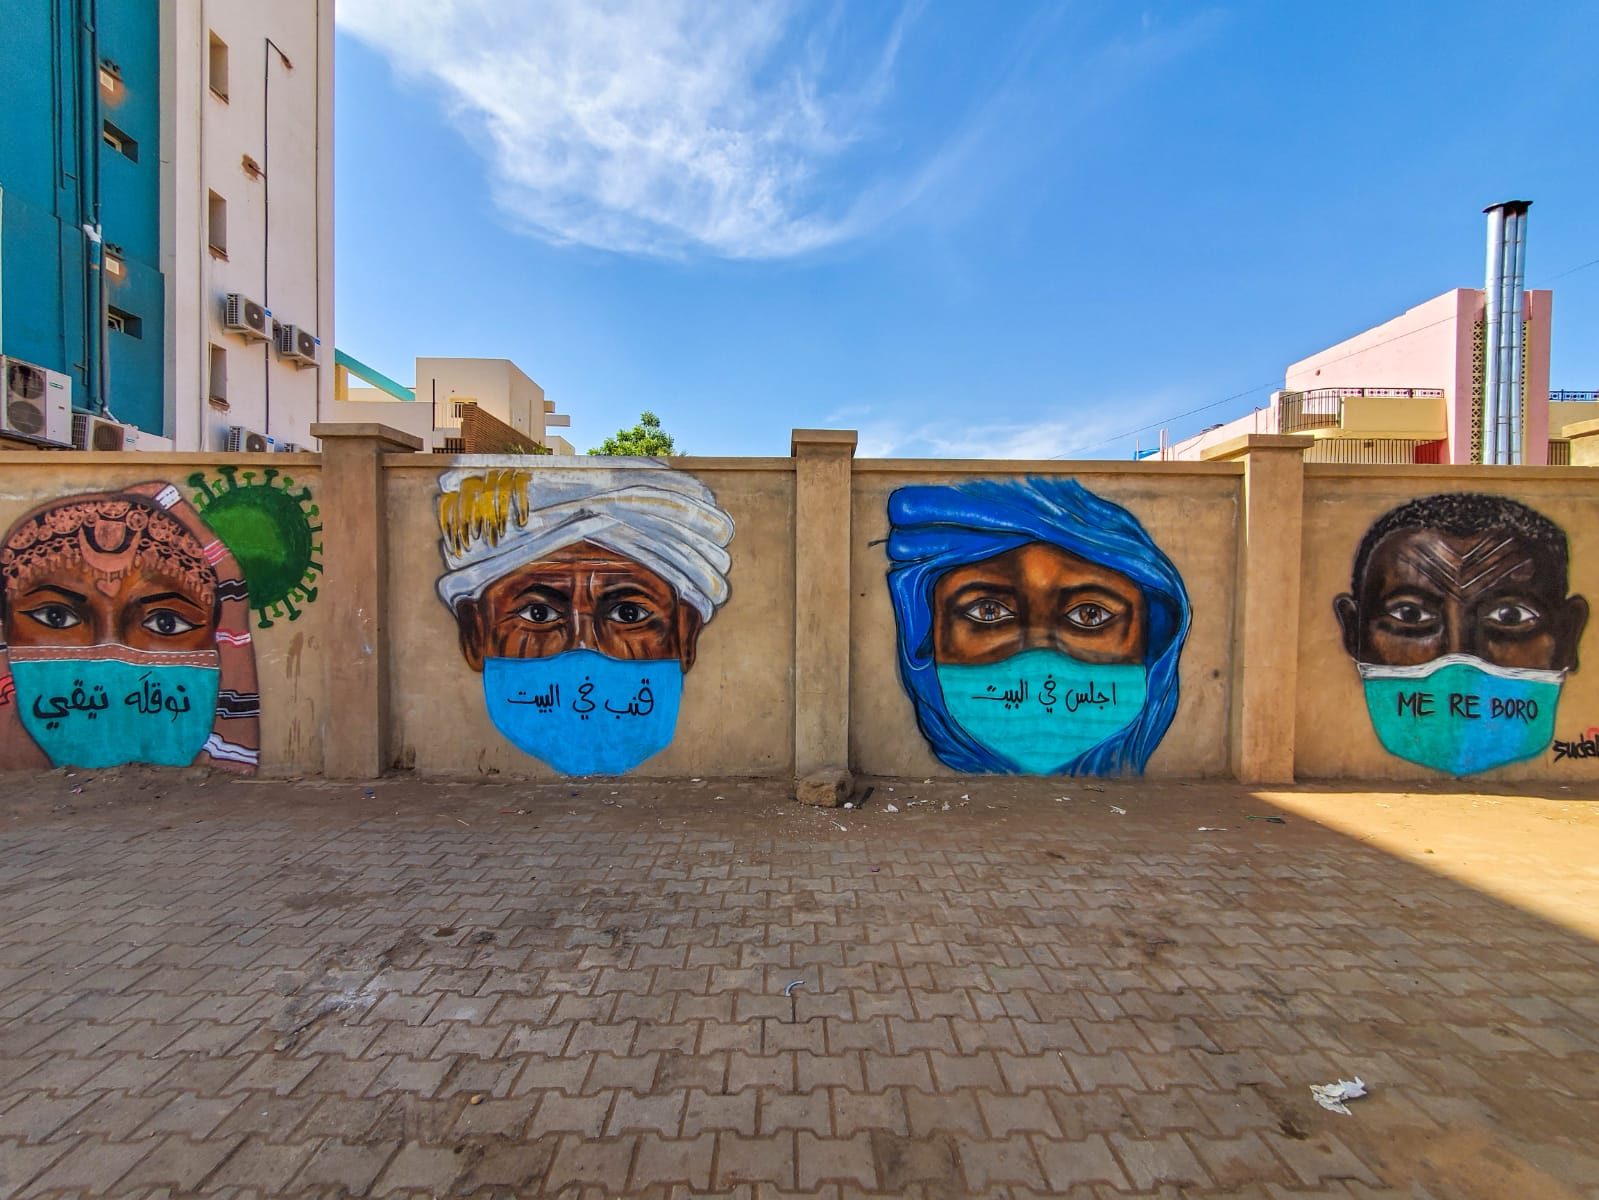 Mural by Assil Diab 'Sudalove' which is part of a self-initiated street art campaign on the coronsvirus pandemic. The mural located in Mashtal Street, Khartoum won a dissemination award from UNESCO & i4policy in 2020. Courtesy of the artist.